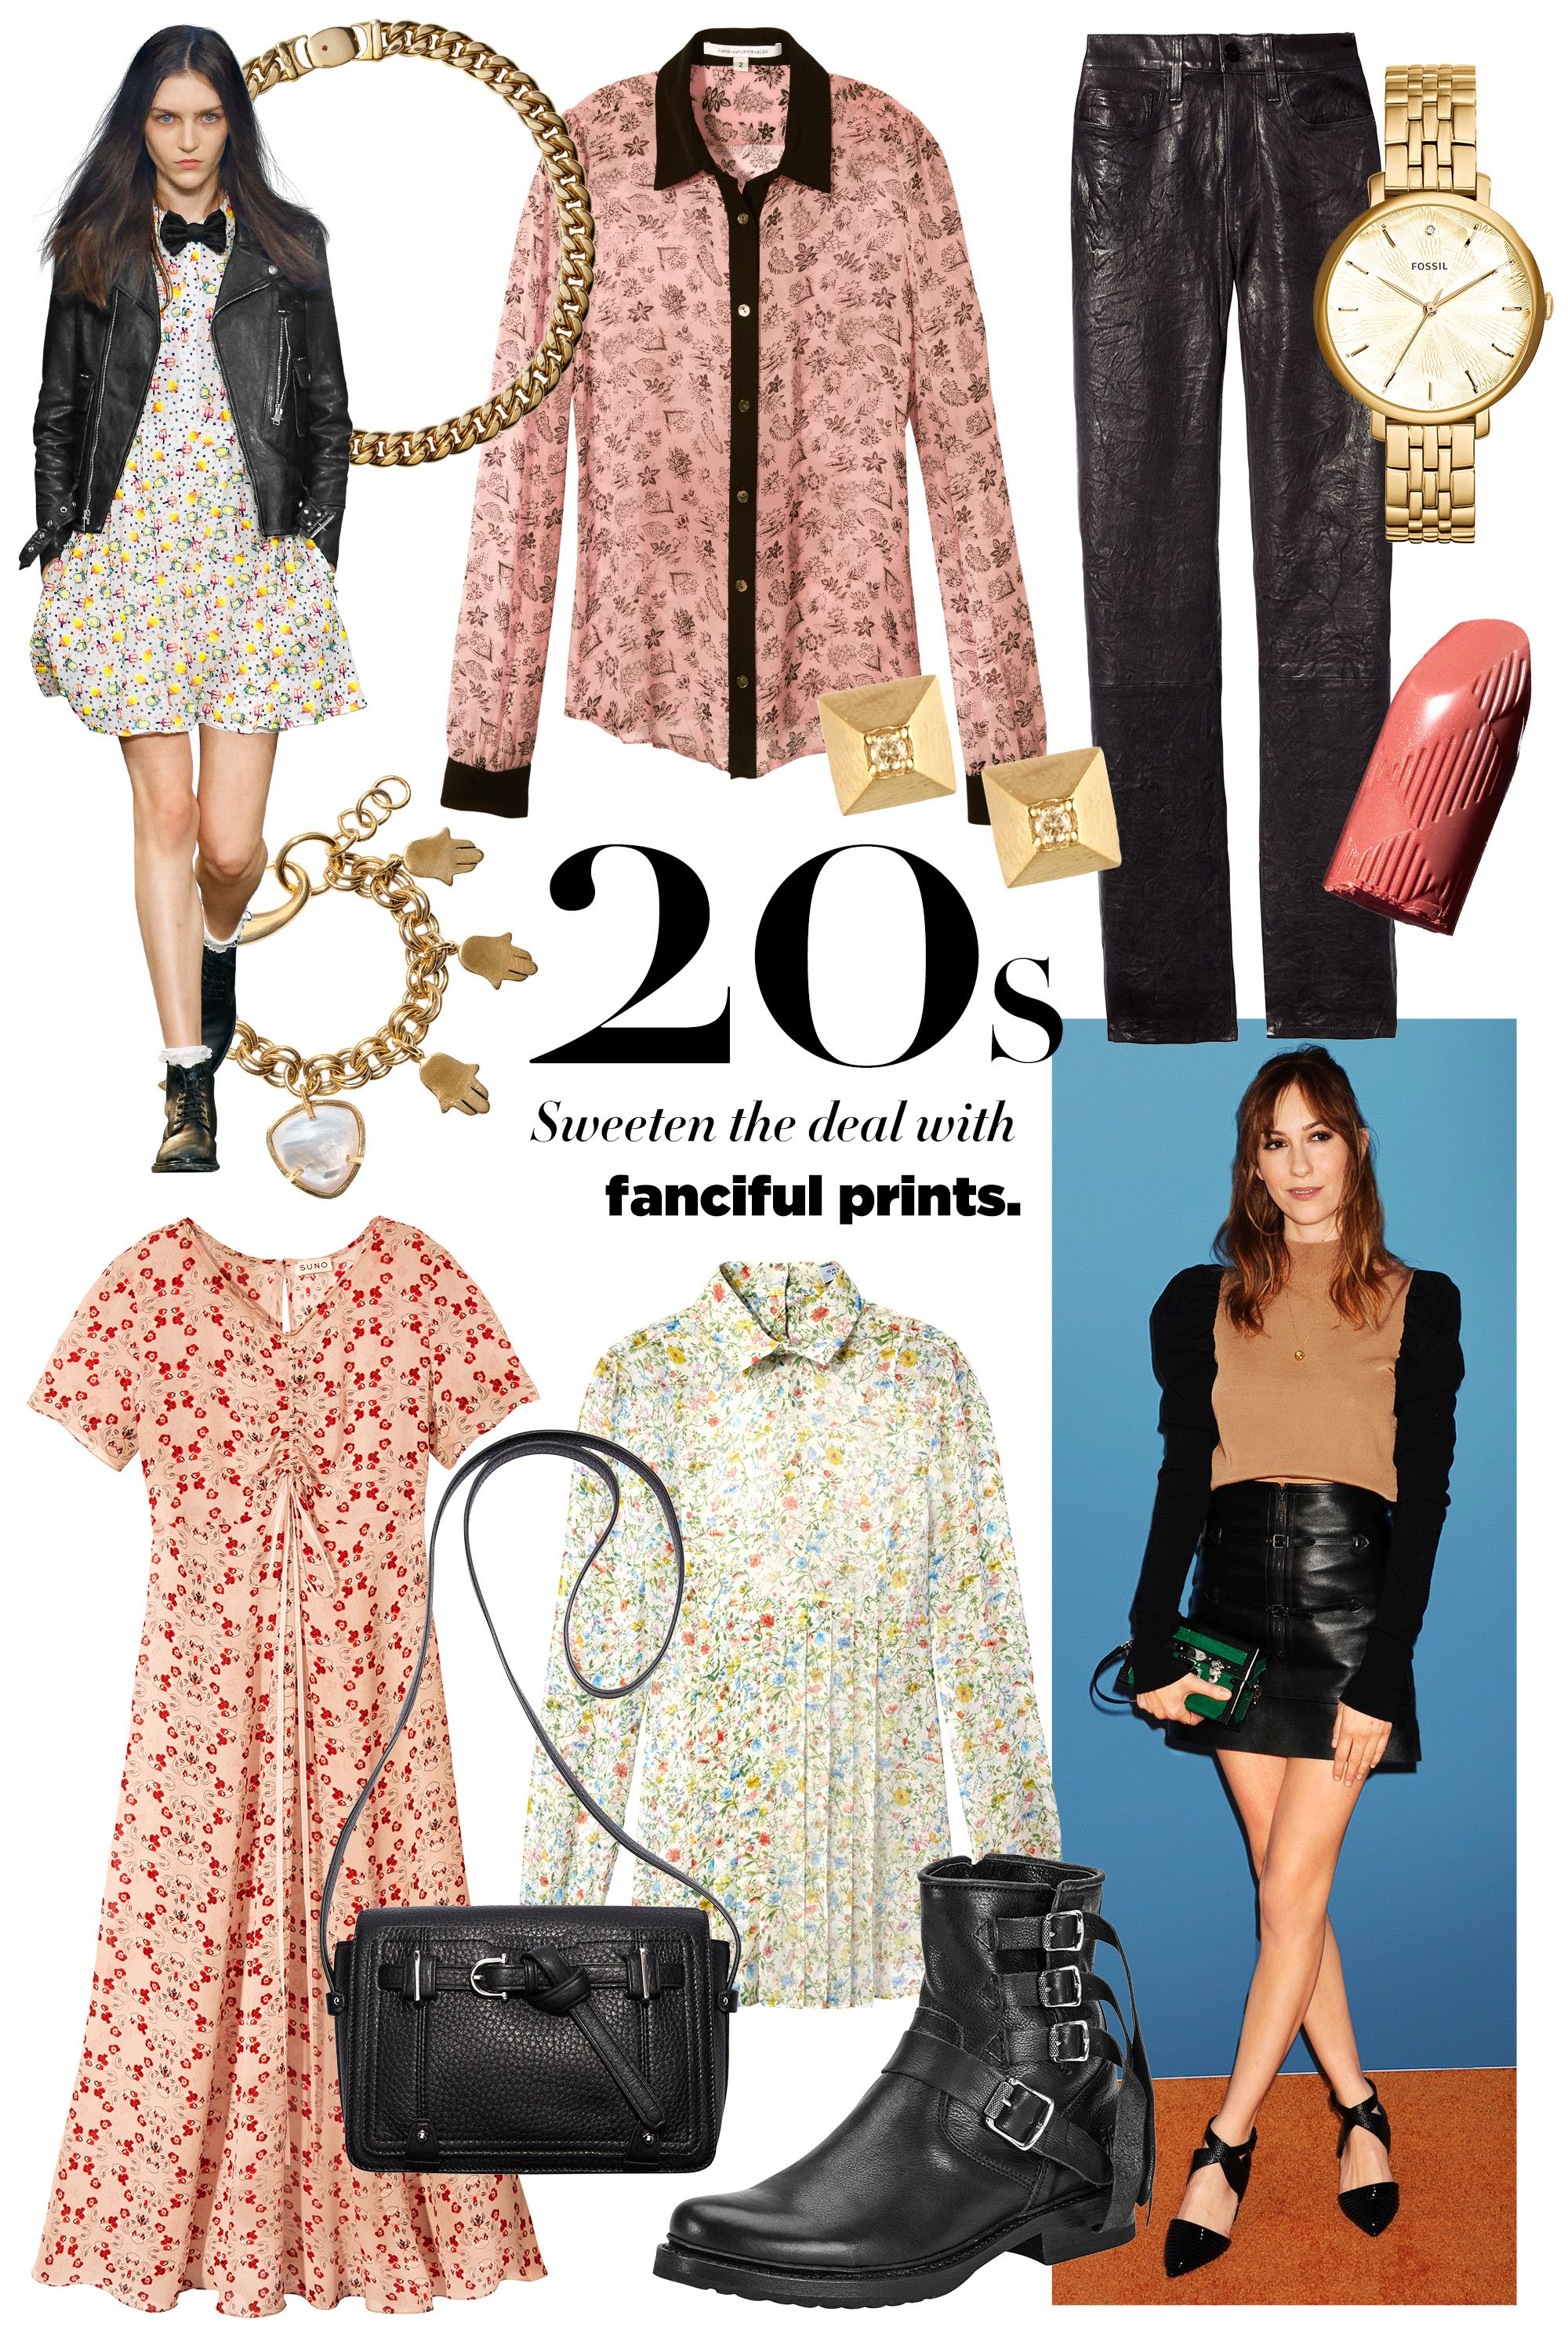 """<p><strong>Stylists's Tip: </strong>Toughen up flowered patterns with black leather. </p><p><strong>Roberto Coin </strong>necklace, $12,300, <a href=""""https://shop.harpersbazaar.com/jewelry/"""" target=""""_blank"""">shopBAZAAR.com</a><img src=""""http://assets.hdmtools.com/images/HBZ/Shop.svg"""" class=""""icon shop"""">; <strong>Diane von Furstenberg </strong><span class=""""redactor-invisible-space"""" style=""""line-height: 1.6em; background-color: initial;"""">blouse, $298, <a href=""""http://www.dvf.com/dvf-mariah-chiffon-blouse/S937101G15W.html?dwvar_S937101G15W_color=SMFPB&dwvar_S937101G15W_size=2#cgid=blouses"""" target=""""_blank"""">dvf.com</a>; <strong>Hirotaka </strong><span class=""""redactor-invisible-space"""">earrings, $350, <a href=""""http://www.hiro-taka.com/"""" target=""""_blank"""">hiro-taka.com</a>; <strong></strong><strong>Frame Denim </strong>pants, $950, <a href=""""https://shop.harpersbazaar.com/designers/frame/le-skinny-leather-pants"""" target=""""_blank"""">shopBAZAAR.com</a><img src=""""http://assets.hdmtools.com/images/HBZ/Shop.svg"""" class=""""icon shop"""">; <strong>Fossil </strong><span class=""""redactor-invisible-space"""">watch, $205, <a href=""""https://www.fossil.com/us/en/watches/women-watches/view-all.html"""" target=""""_blank"""">fossil.com</a>; <strong>Burberry </strong><span class=""""redactor-invisible-space"""">Kisses lipstick in Peach Delight, $33, <a href=""""https://us.burberry.com/burberry-kisses-peach-delight-no57-p39696711"""" target=""""_blank"""">us.burberry.com</a>; <strong>Lizzie Fortunato </strong><span class=""""redactor-invisible-space"""">charm bracelet, $295, <a href=""""https://shop.harpersbazaar.com/designers/l/lizzie-fortunato/tropics-charm-bracelet-6092.html"""" target=""""_blank"""">shopBAZAAR.com</a>; <strong>Suno </strong><span class=""""redactor-invisible-space"""">dress, $595, Opening Ceremony, NYC, 646-237-6078; <strong>Etienne Aigner </strong><span class=""""redactor-invisible-space"""">bag, $295, 212-334-1079; <strong>Gabriela Hearst </strong><span class=""""redactor-invisible-space""""><span class=""""redactor-invisible-space"""">blouse, $795, Barneys """